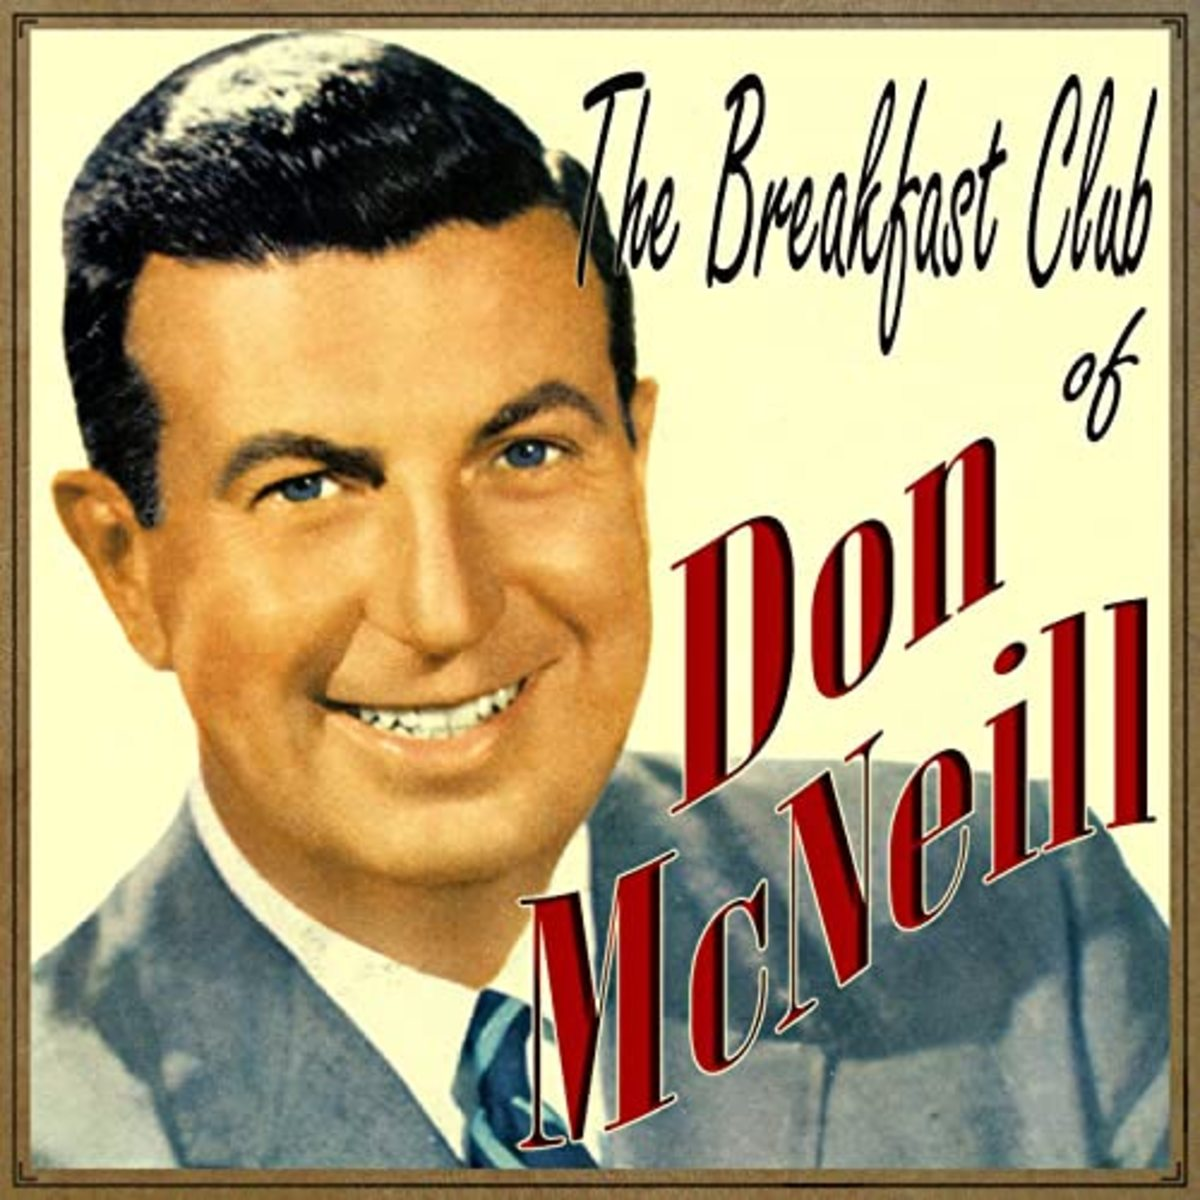 In 1963, Don McNeill's Breakfast Club was a favorite radio program.